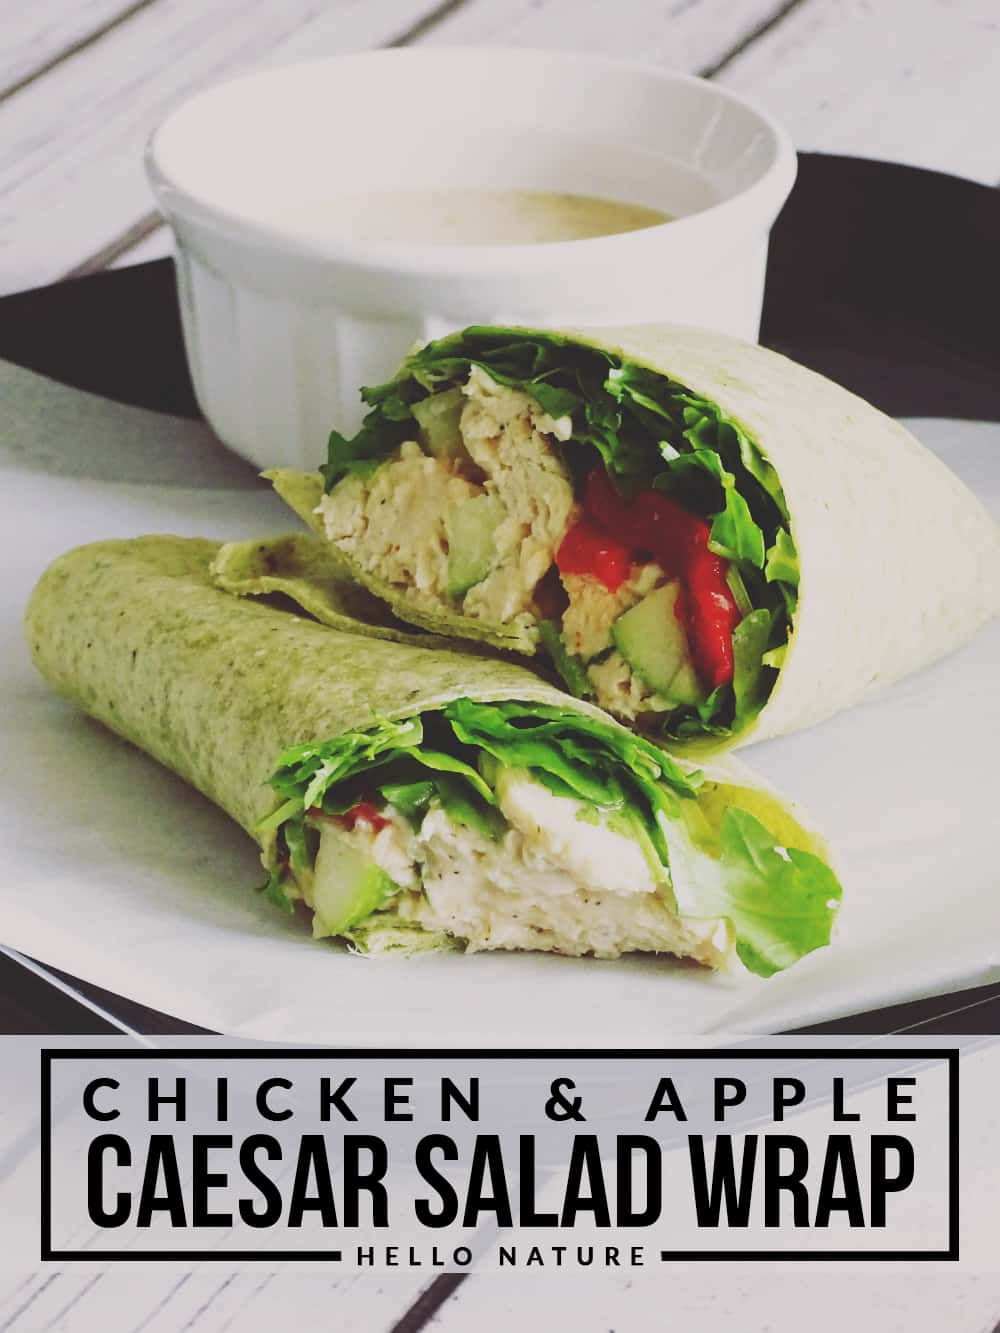 Looking for a fun way to shake things up at lunch? This Chicken and Apple Caesar Salad Wrap is the perfect option for a fun, quick meal!